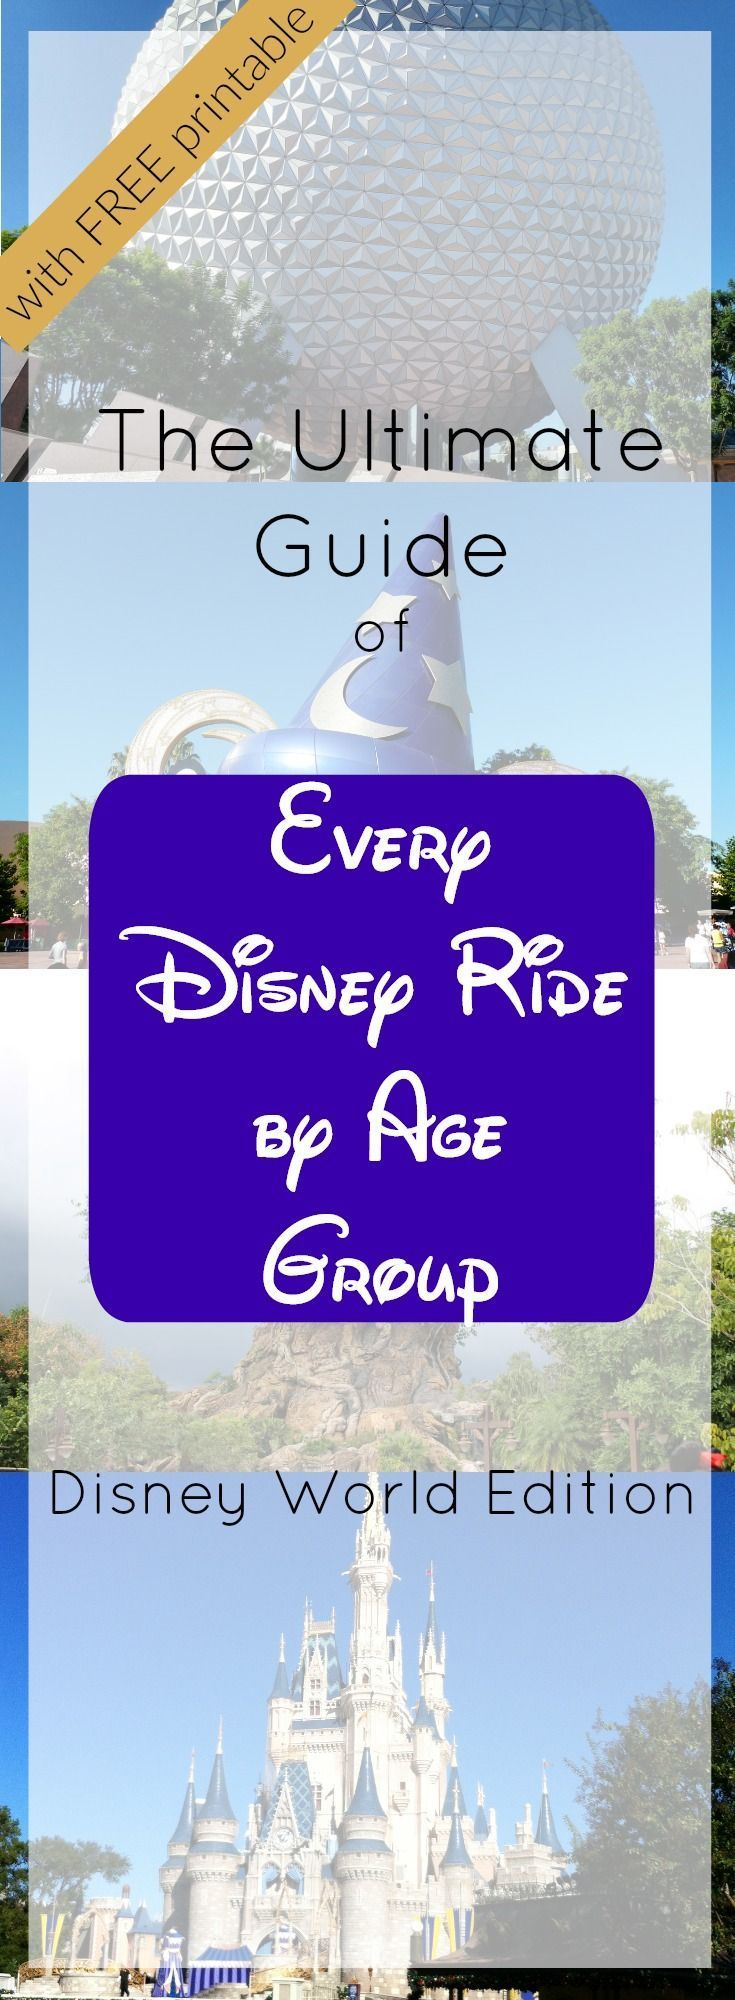 Complete list of EVERY Disney World Ride by Age Group | Super useful planning tool | Plan ahead for who wants to ride what! #Disney #DisneyWorld #WDW #DisneyRides #Guide #Ride